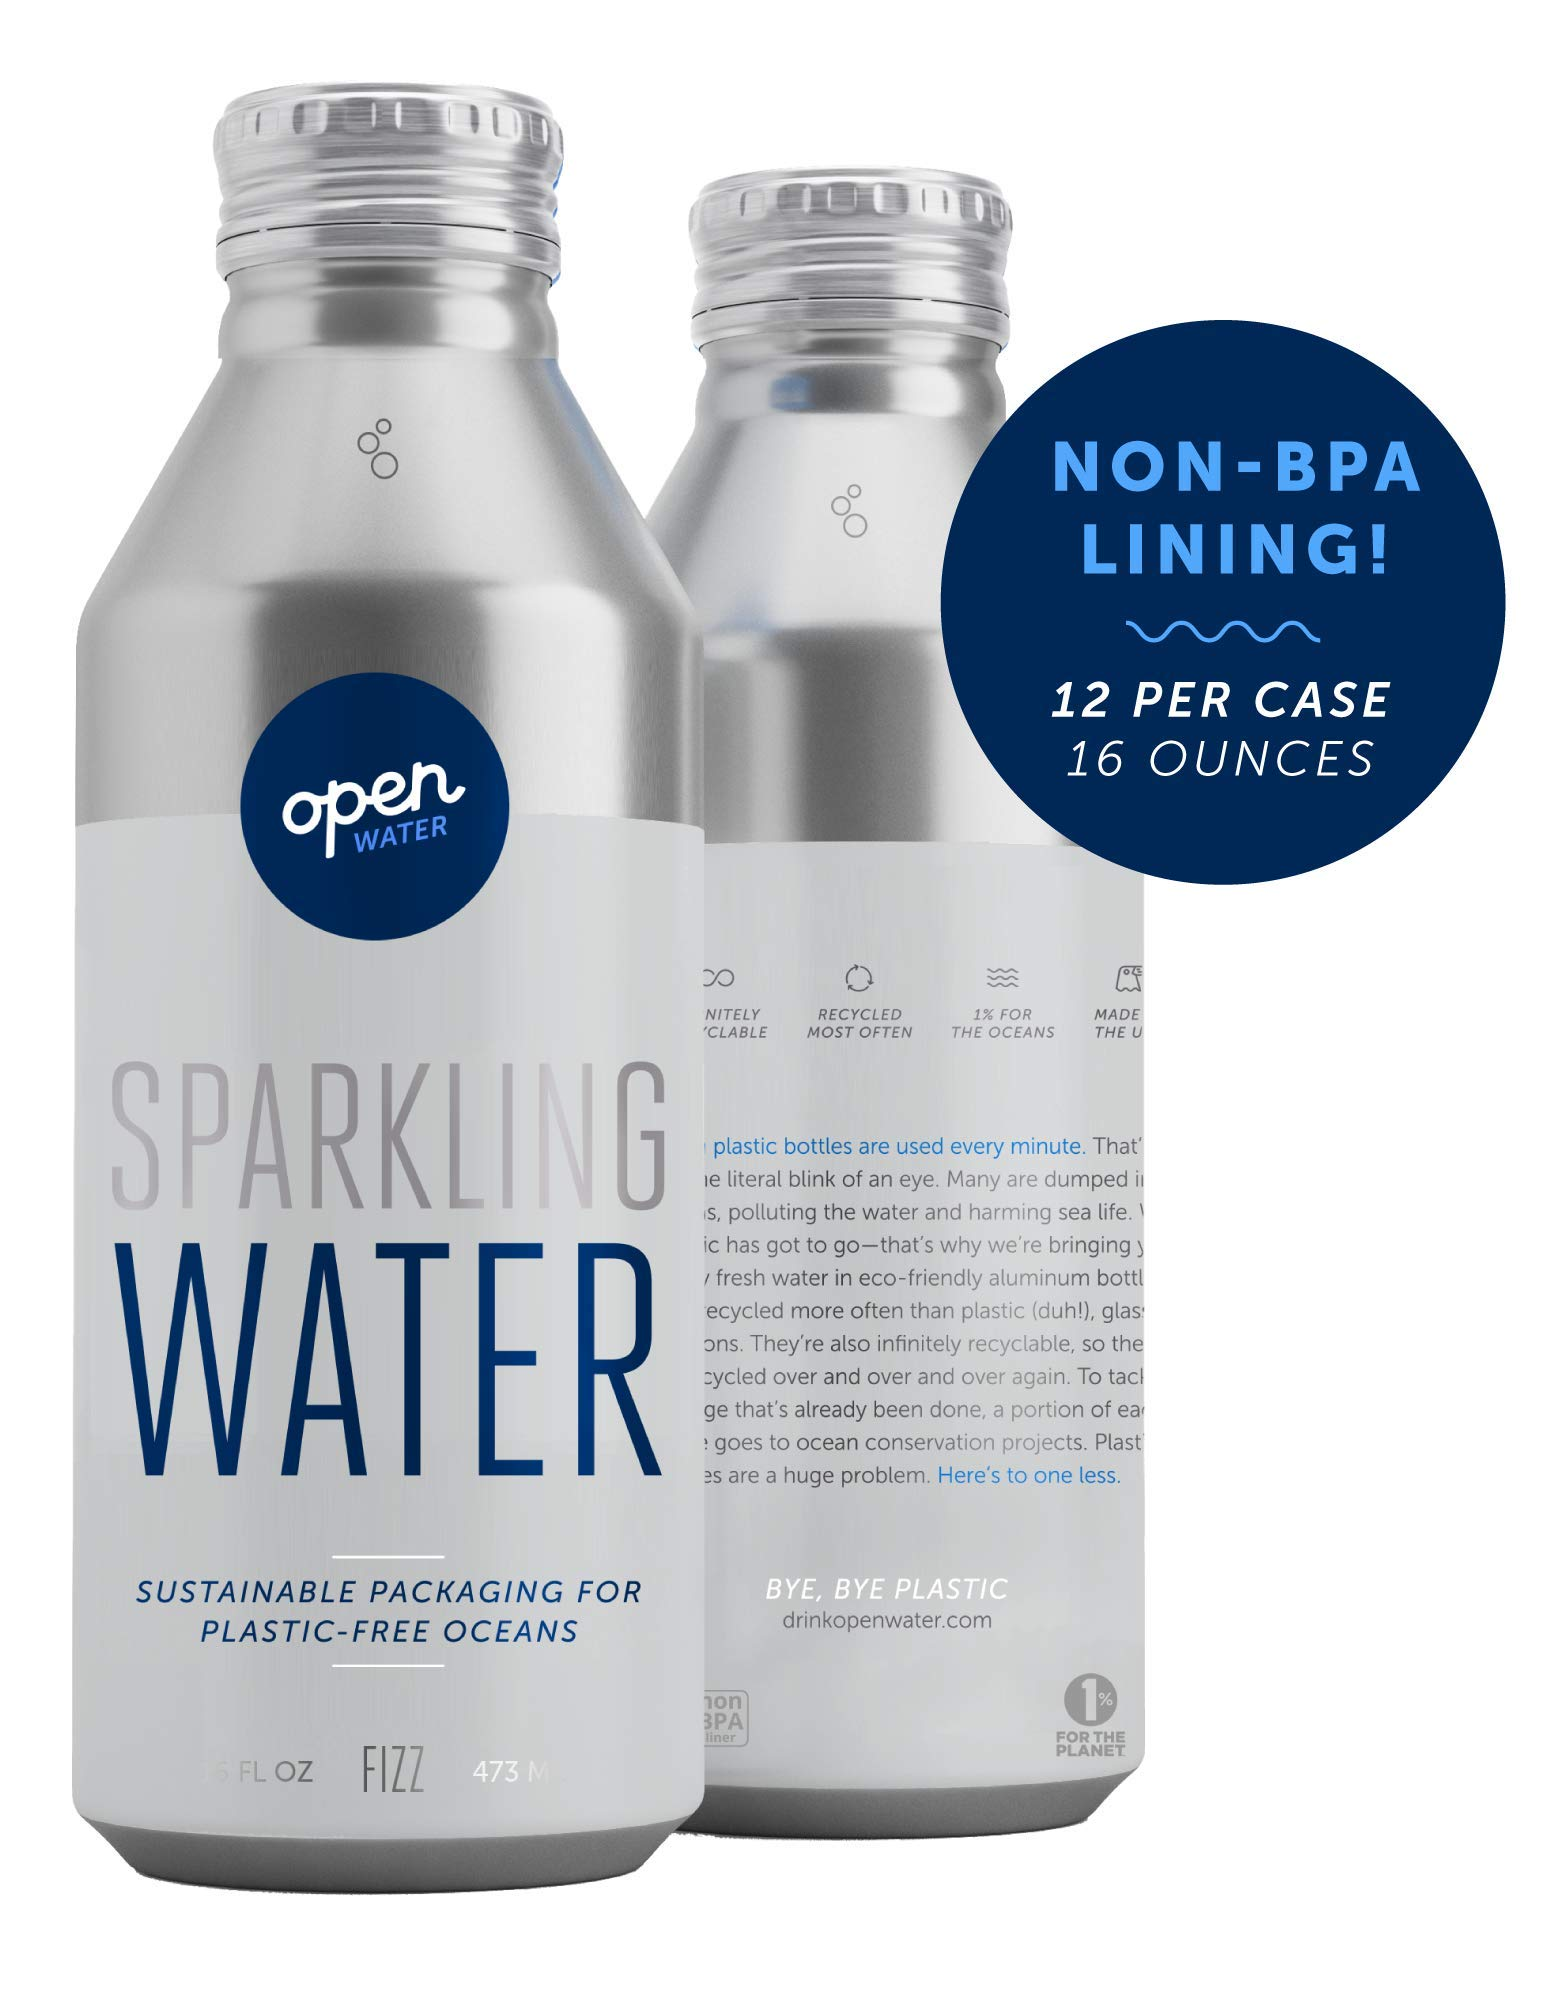 Open Water Sparkling Bottled Water with Electrolytes in 16-oz Aluminum Bottles (4 Cases, 48 bottles - Sparkling) | BPA-free and Eco friendly by Open Water